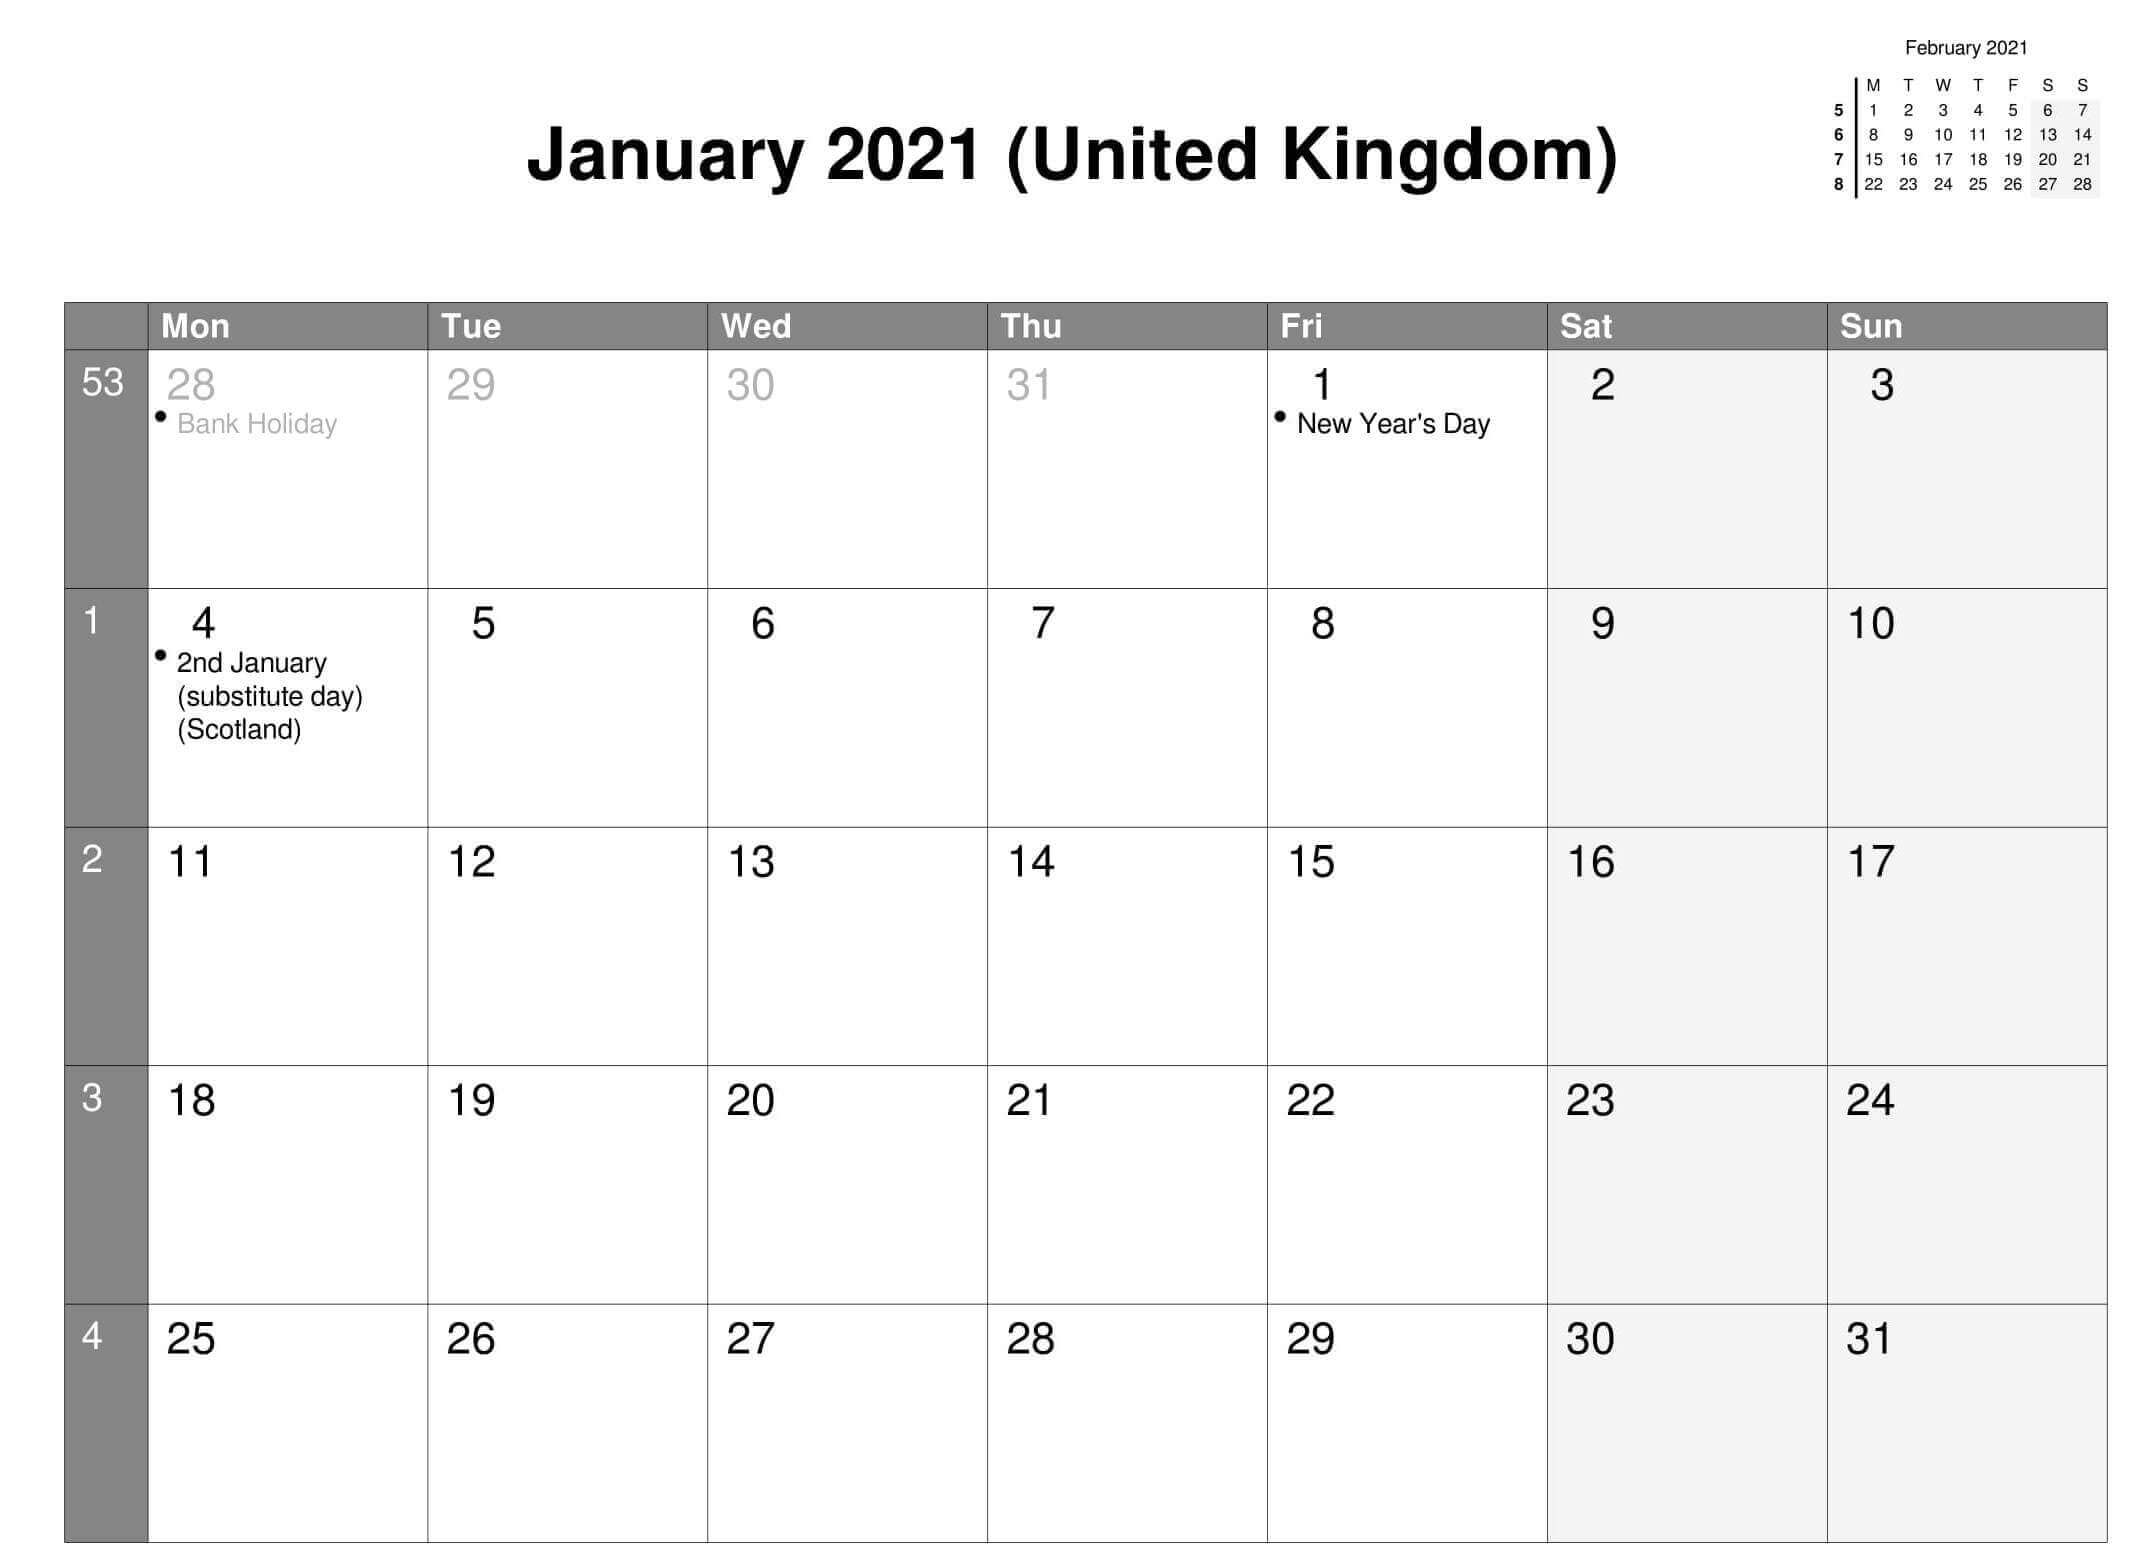 January 2021 United Kingdom Holidays Calendar